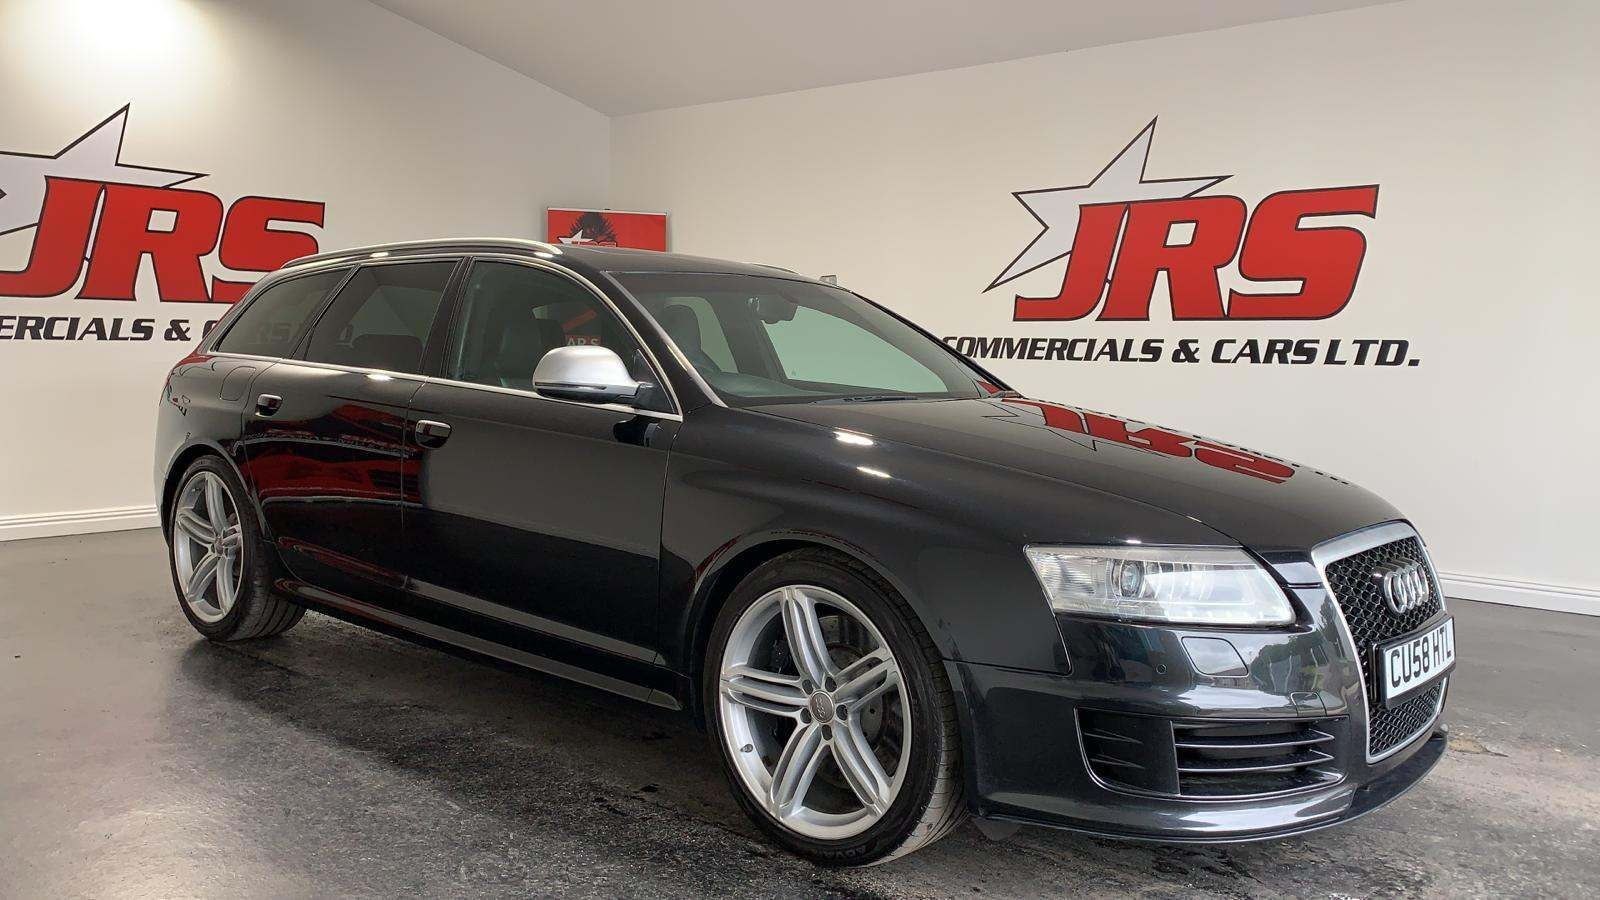 2009 AUDI RS6 Avant 5.0 TFSI V10 Tiptronic Petrol Automatic Sun Roof – J R S Commercials And Cars Dungannon full